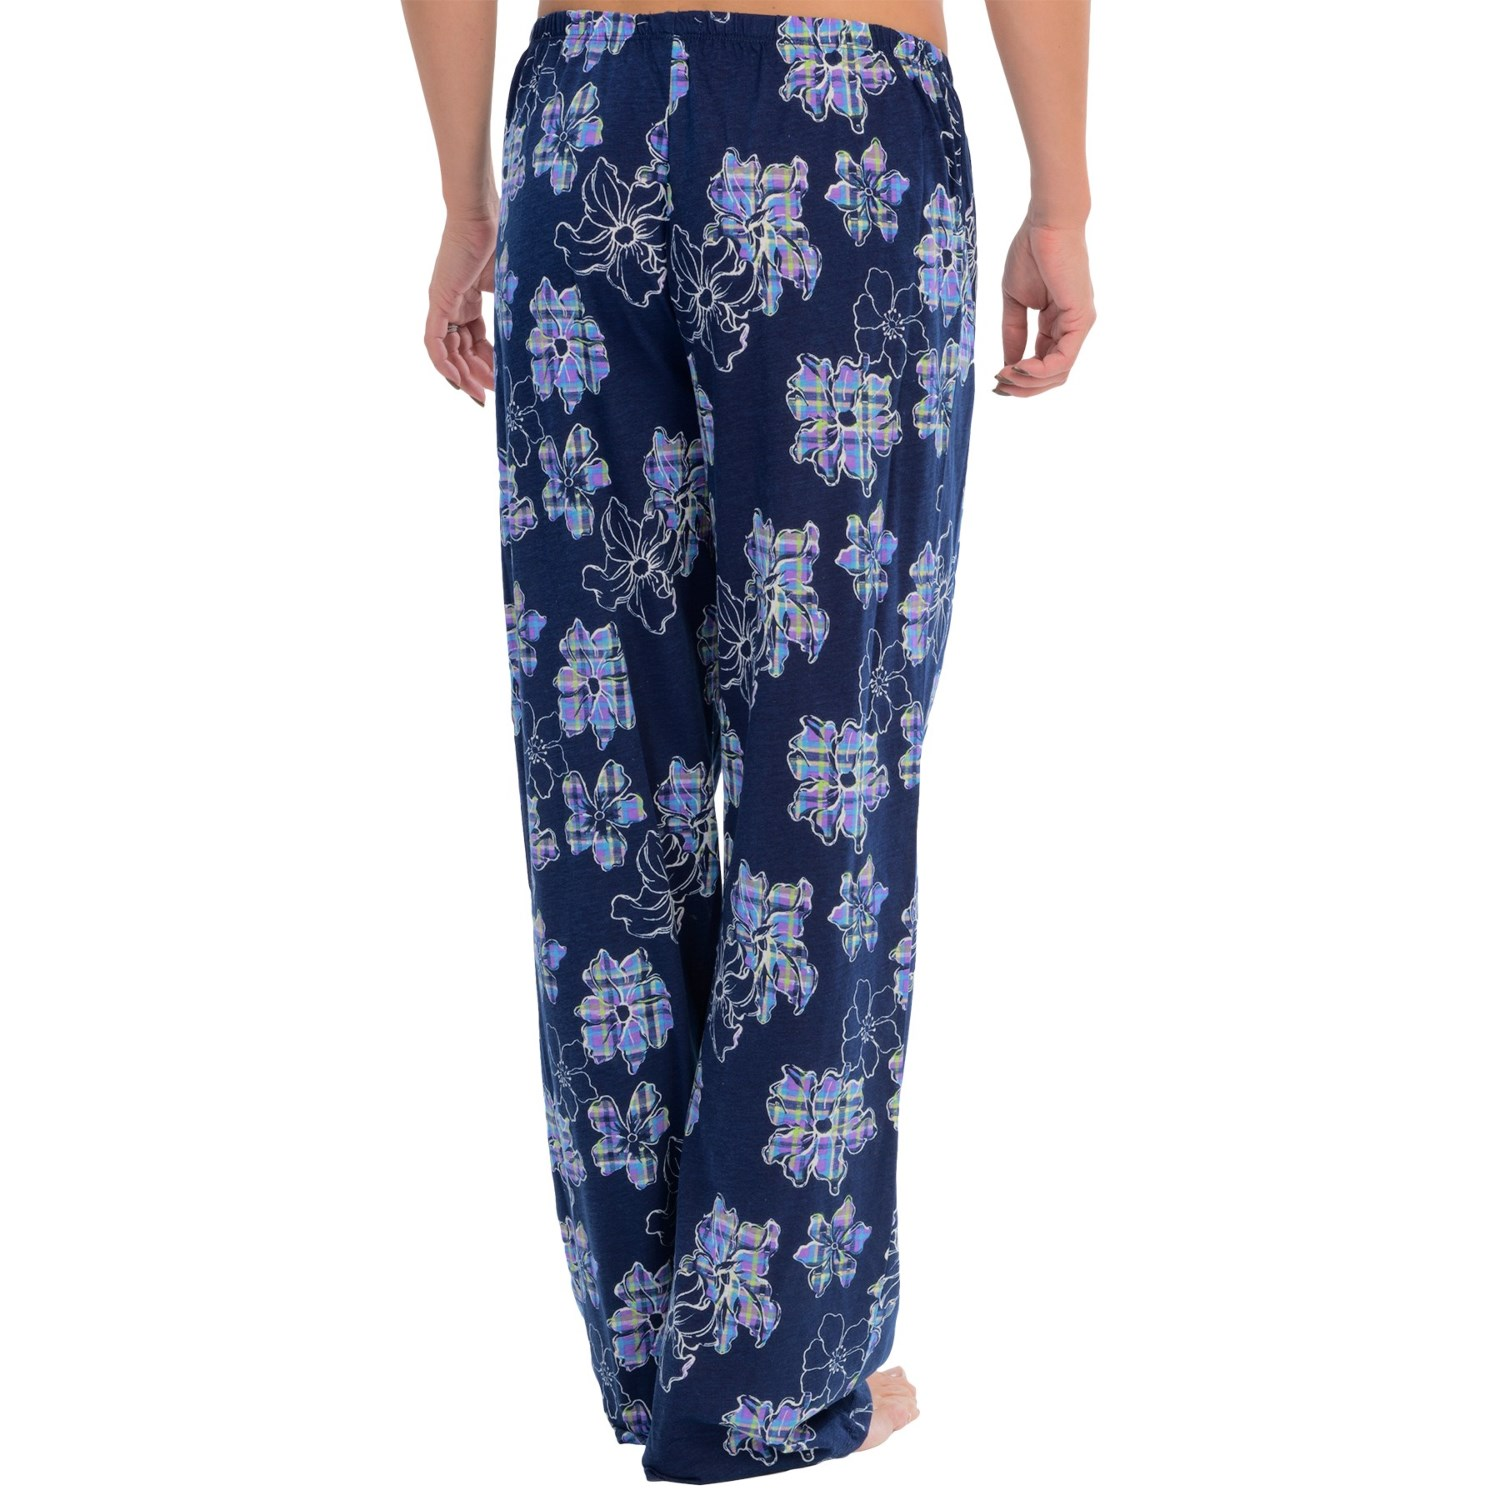 New Casual Gucci Pants For Women 2019